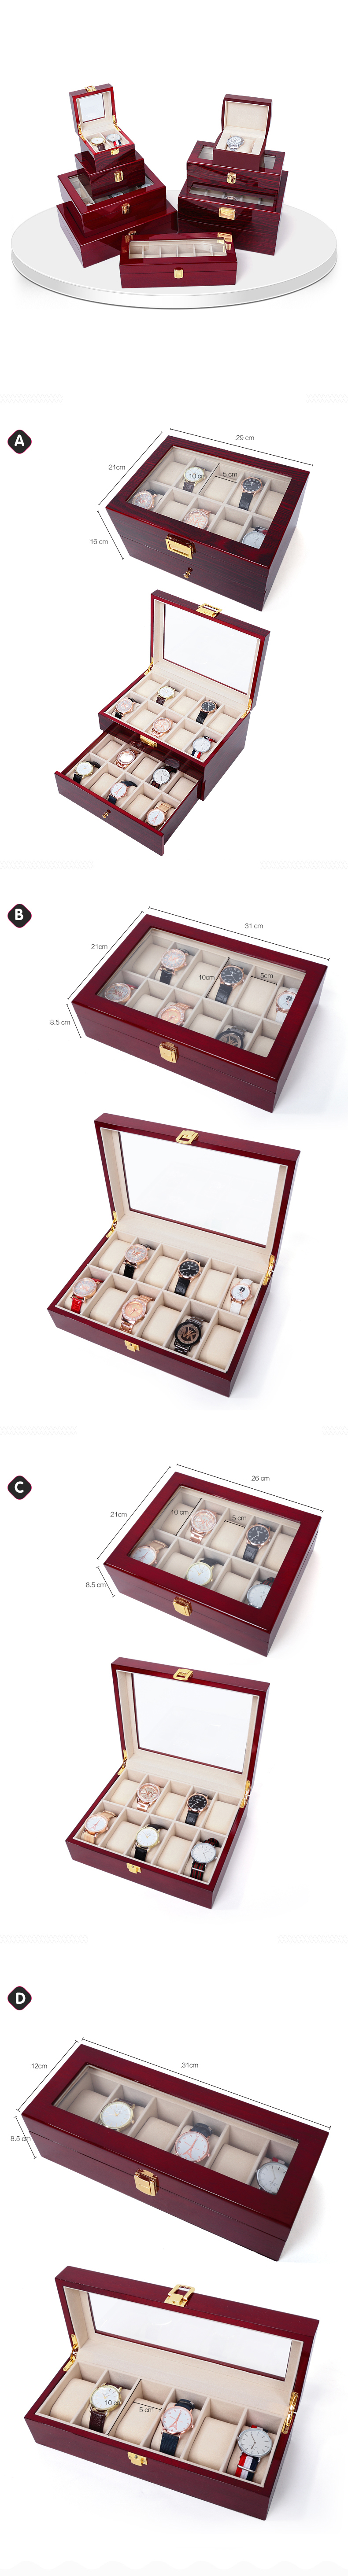 Rosewood Storage Box For Watches